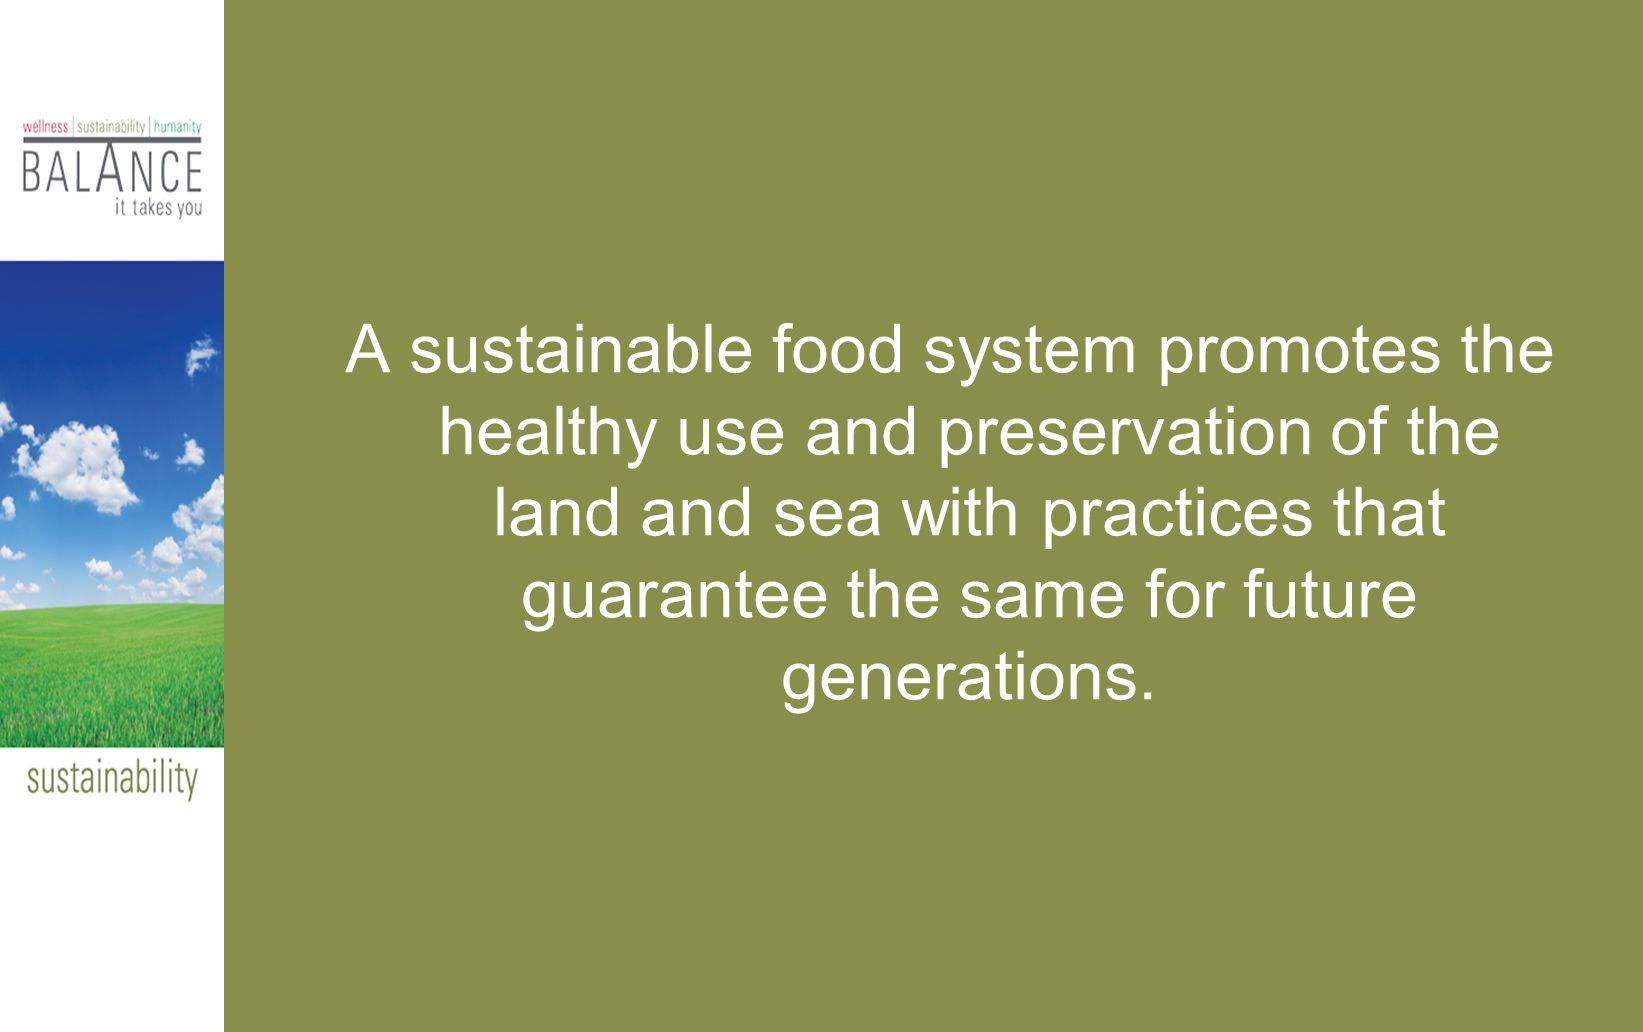 A sustainable food system promotes the healthy use and preservation of the land and sea with practices that guarantee the same for future generations.